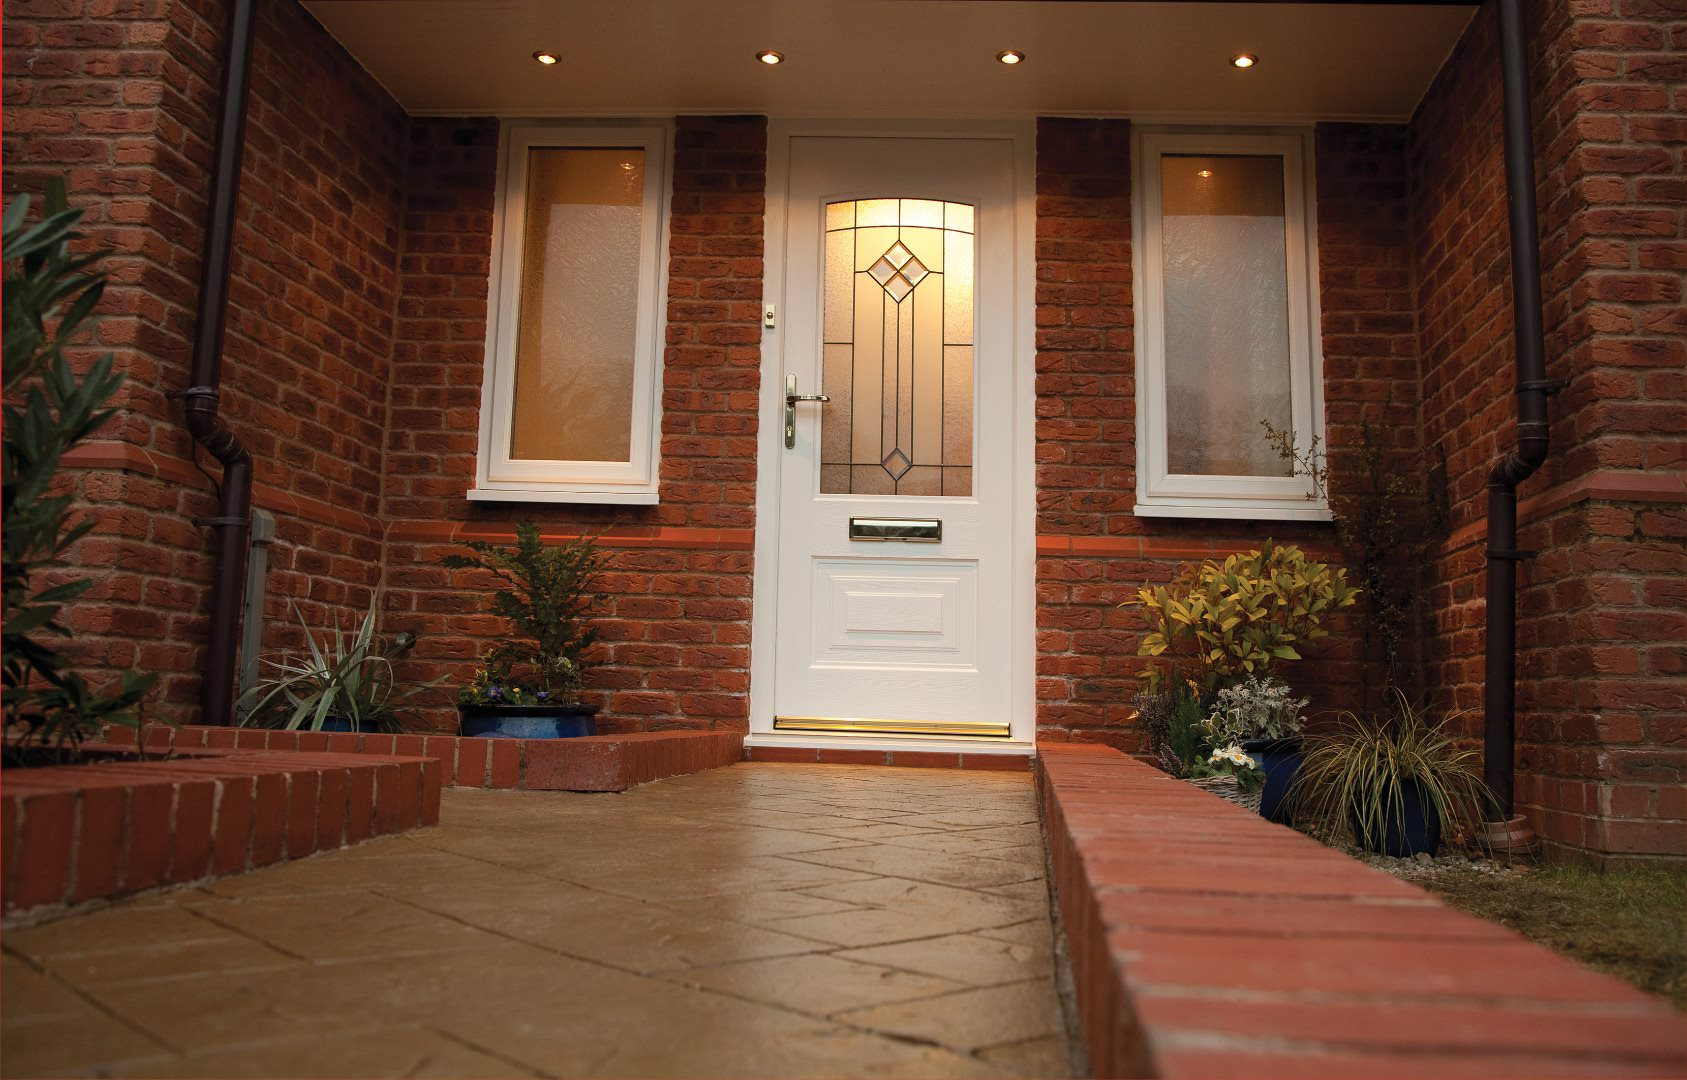 uPVC Doors, Cambridge | Double Glazed Doors